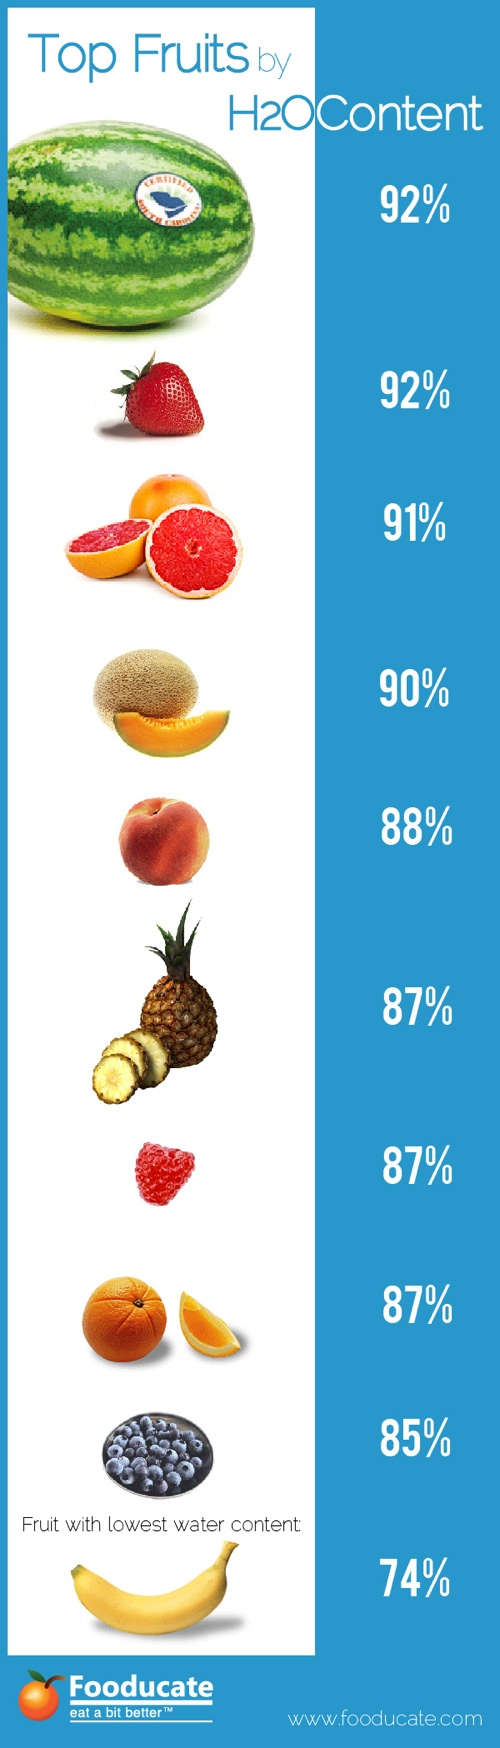 Hydration with Fruit: Tasty, Healthy, and Filling